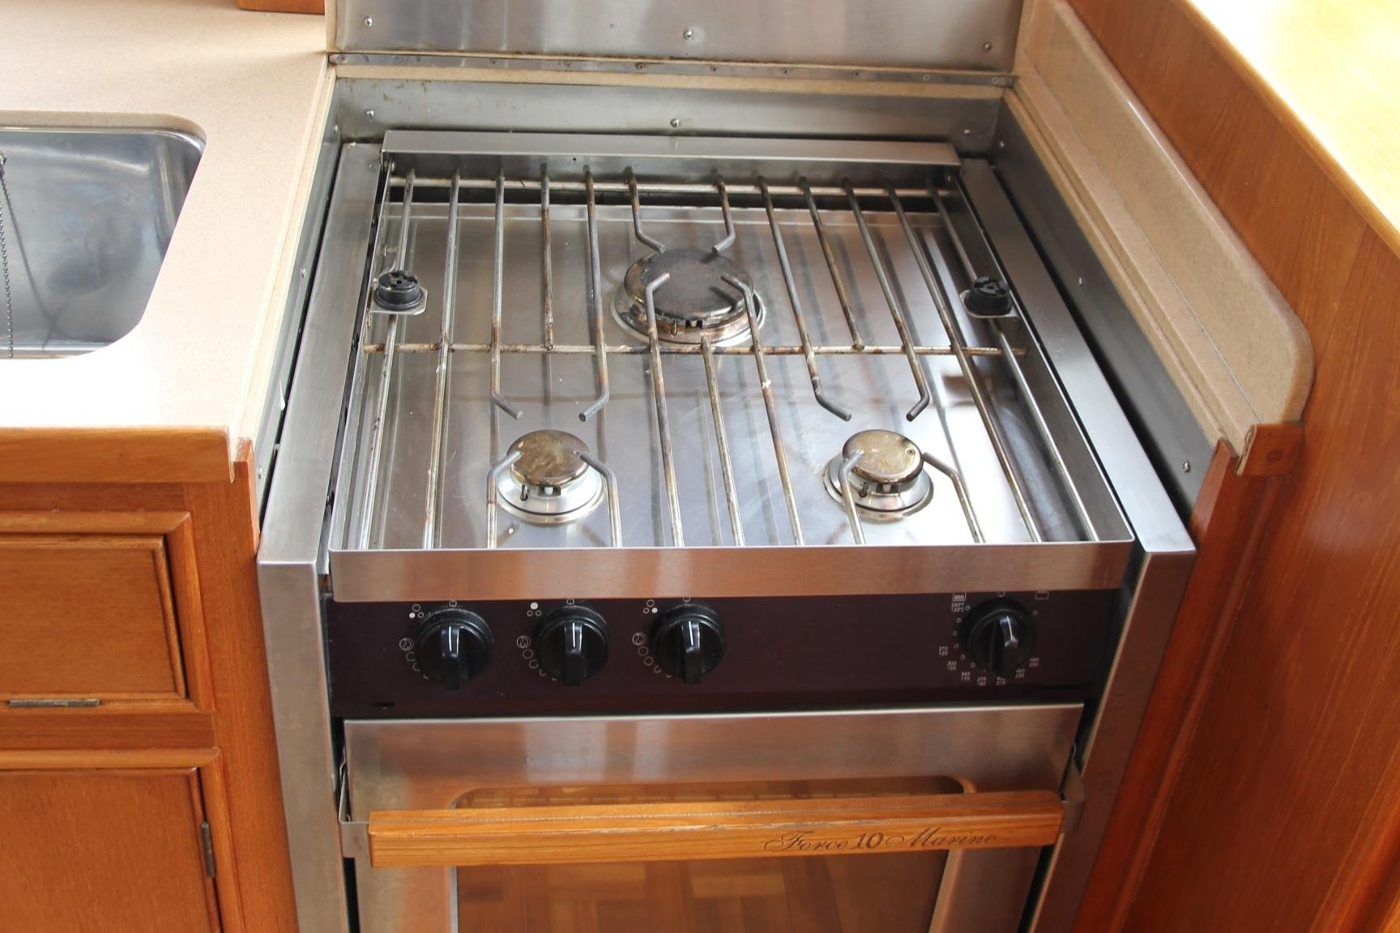 2001 Grand Banks 42 Classic, Stove and Oven